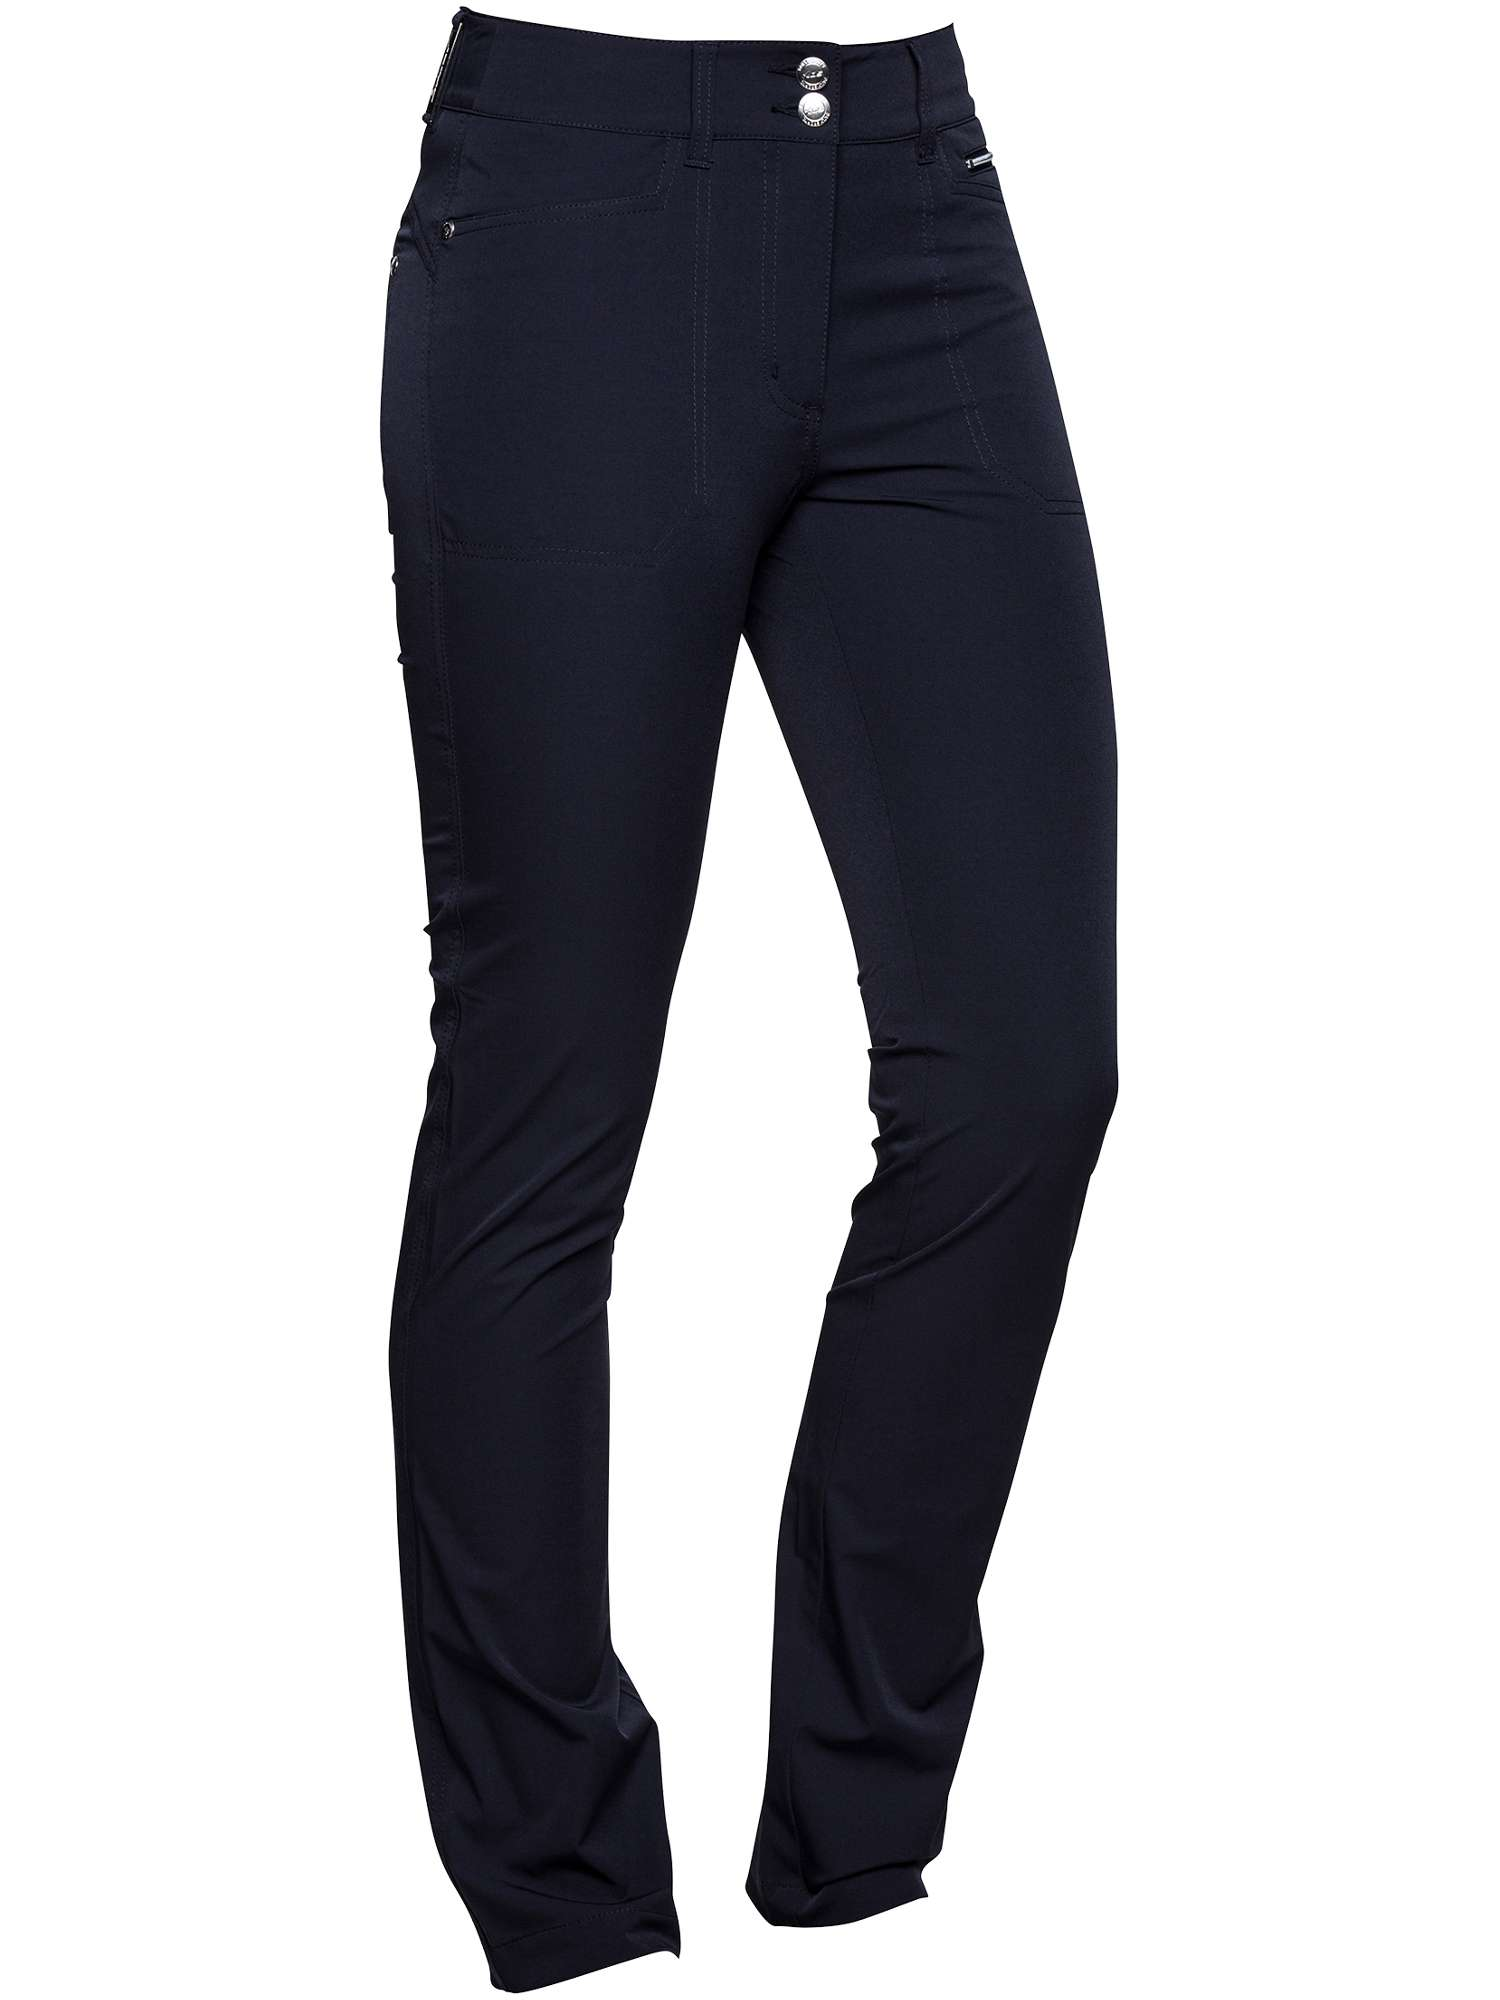 Miracle Daily Miracle Trousers Miracle Daily Daily Sports Sports Trousers Sports qXTPSE